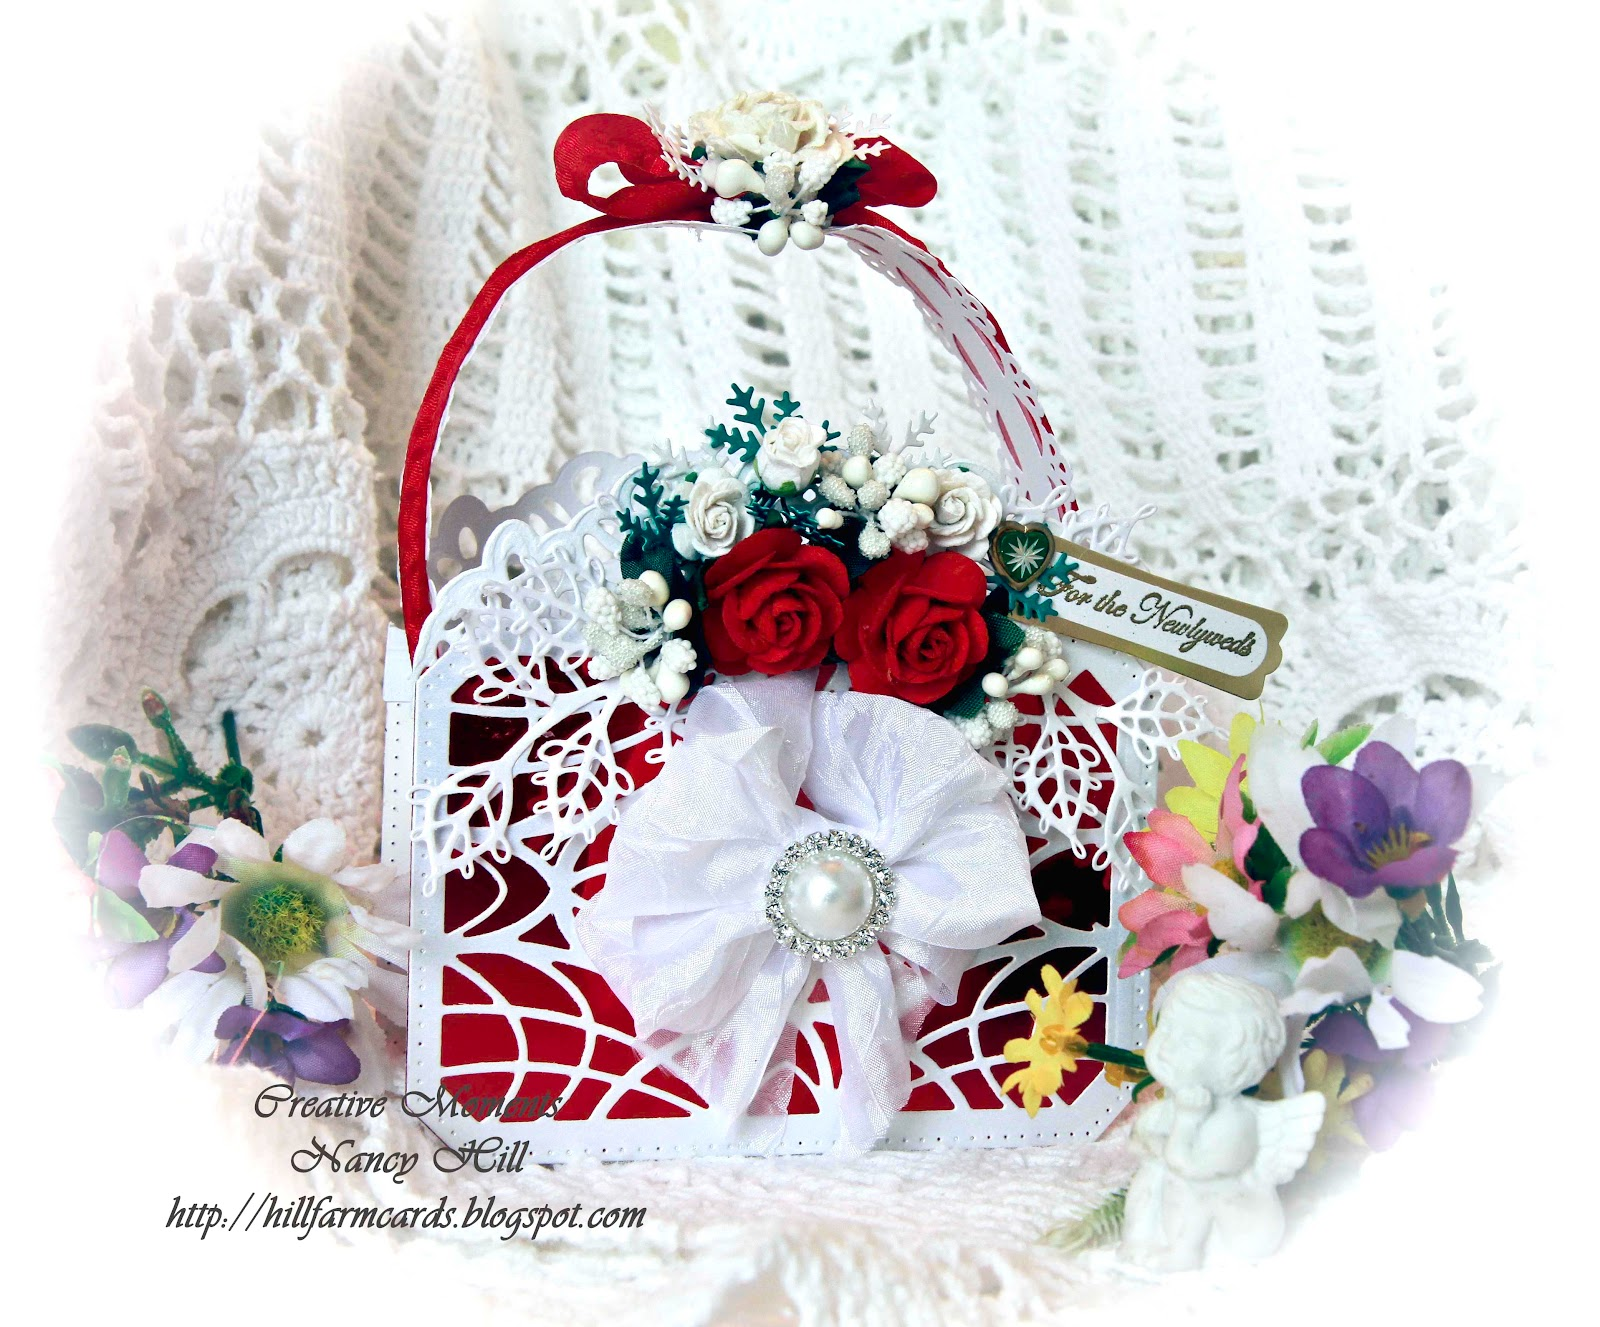 Wedding Gift Bag Cards : Creative Moments by Nancy Hill: Wedding Purse gift bag